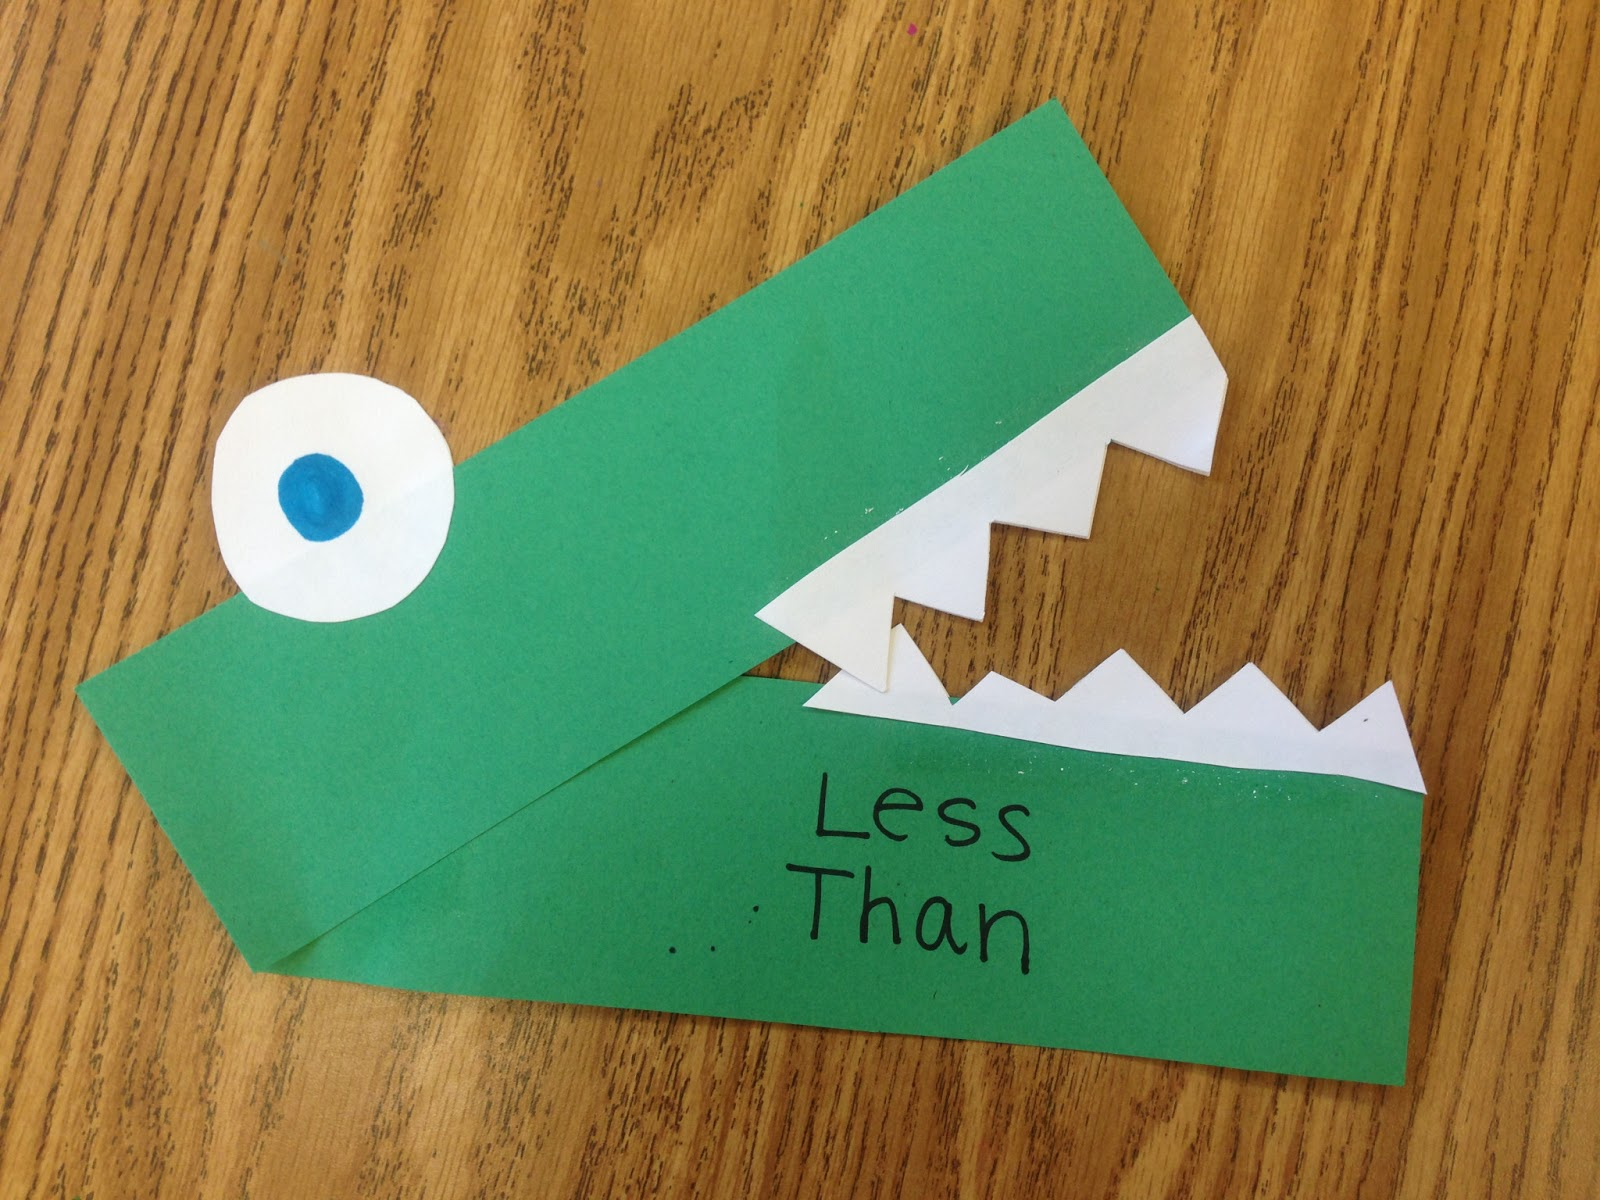 A sunny day in first grade greater thanless than crocodile heres what they looked like publicscrutiny Gallery